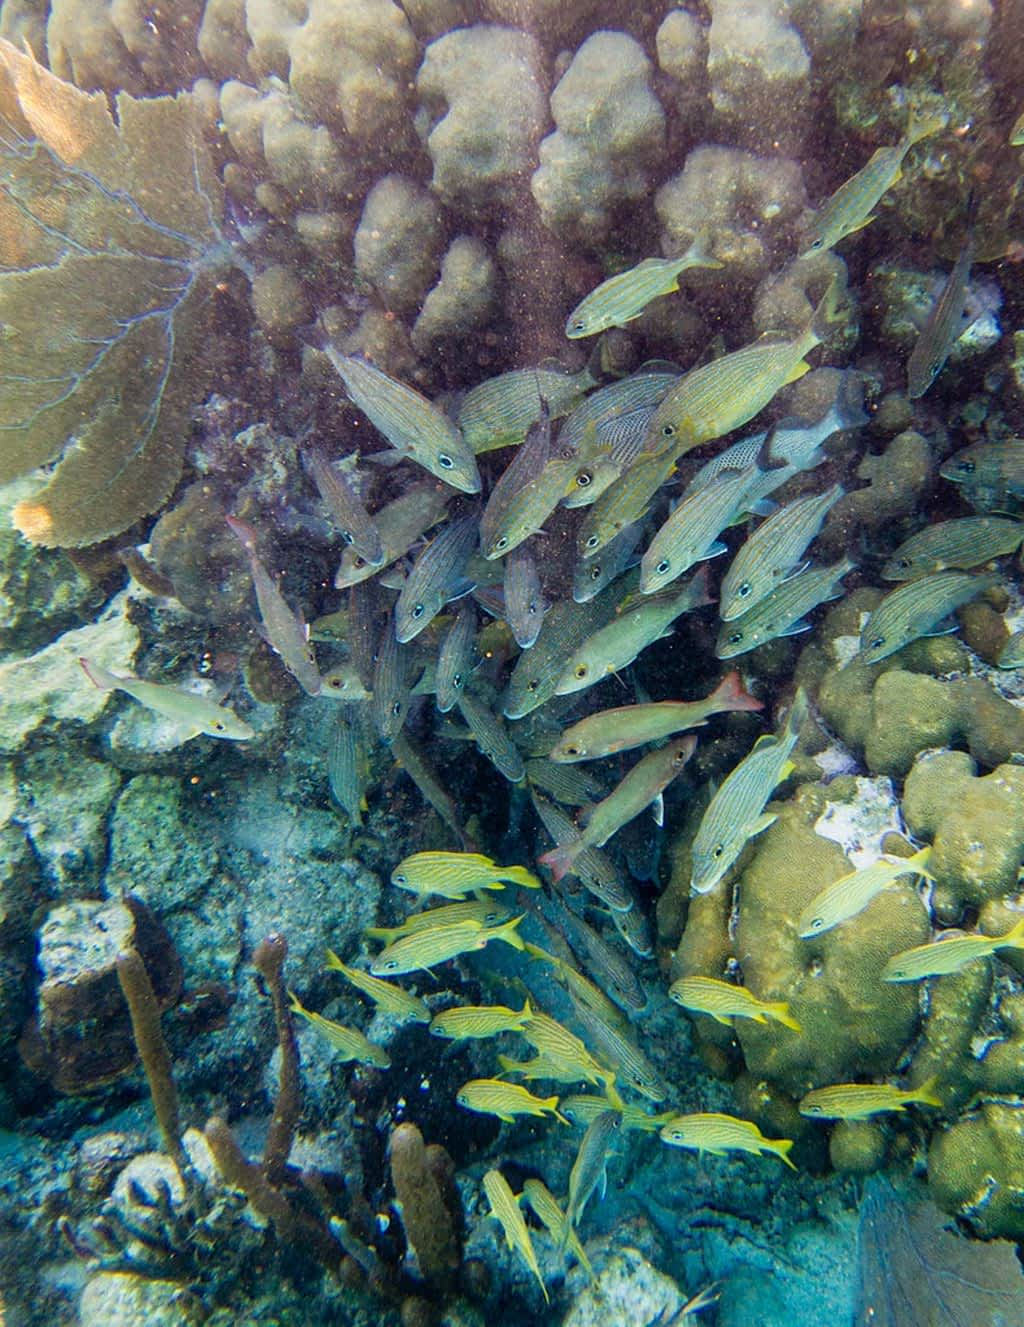 swarms of fish around some coral snorkel